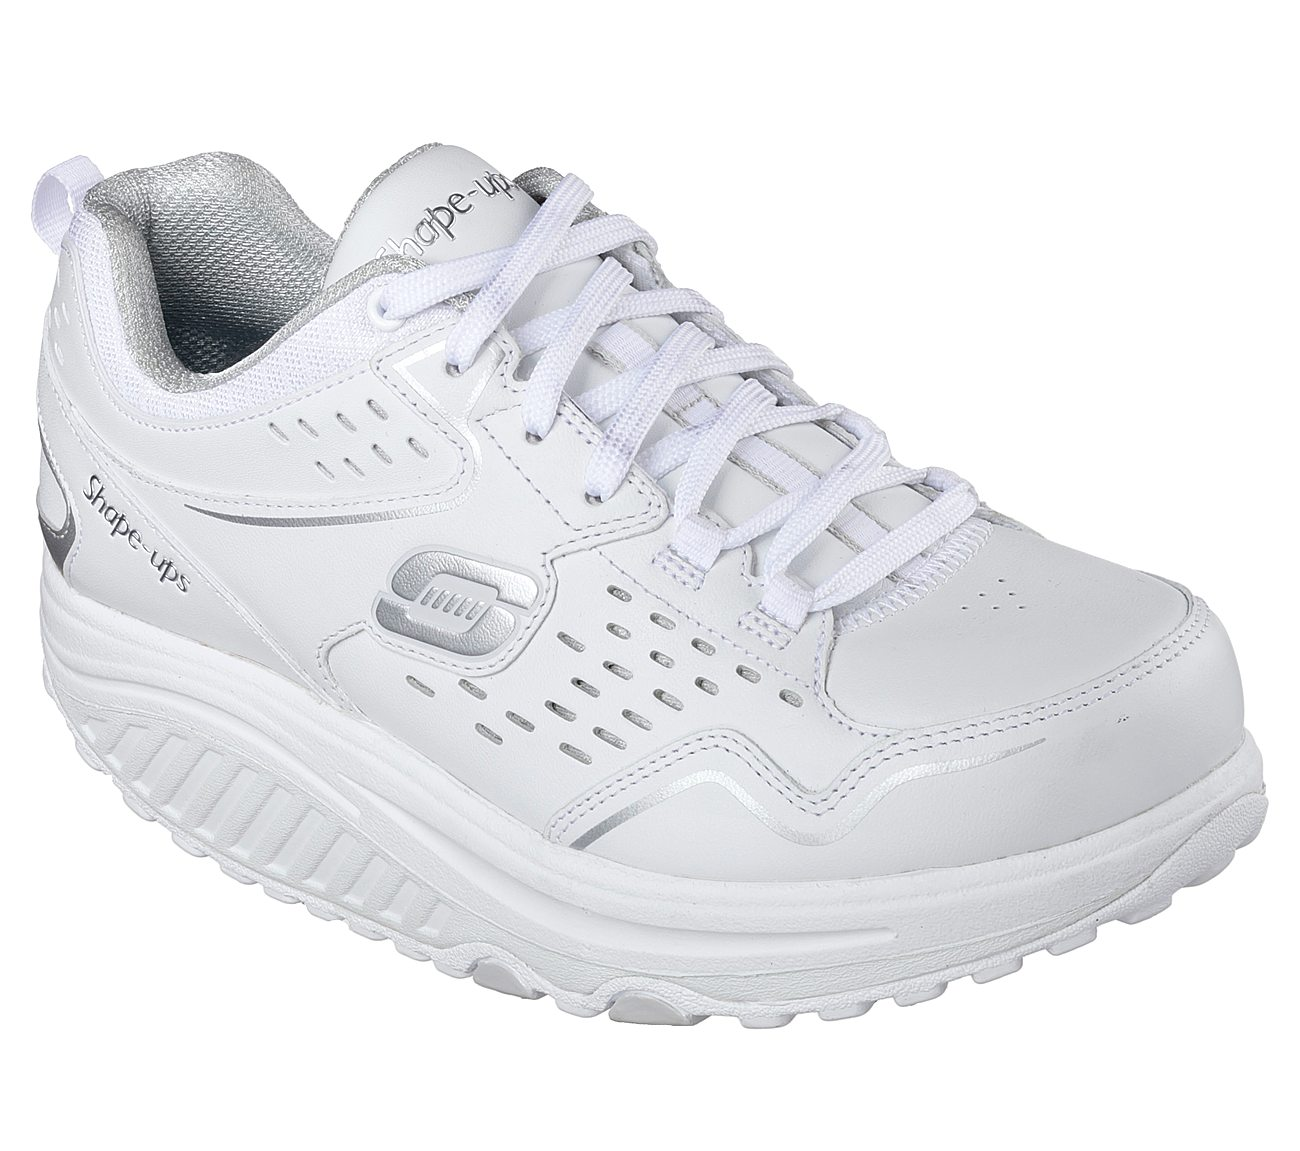 skechers shape ups 2.0 reviews